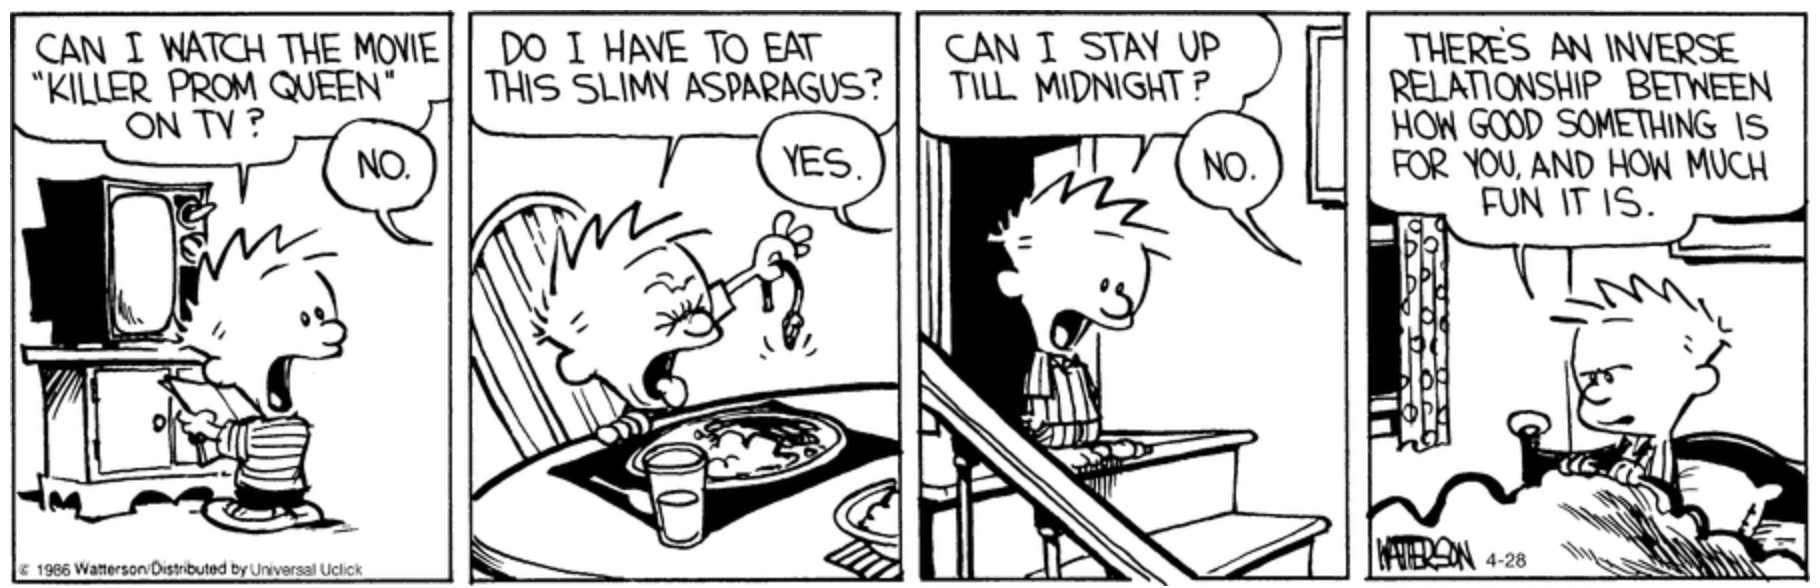 Calvin and Hobbes by Bill Watterson, April 28, 2016, via Go Comics